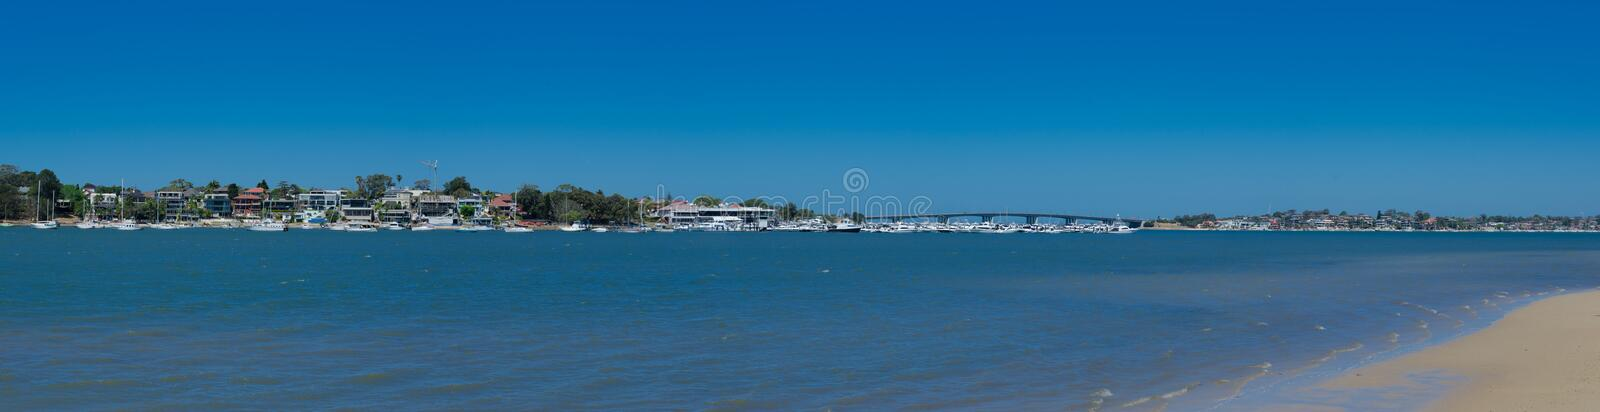 Panoramic of the seascape at Botany Bay with Captain Cook Bridge view crossing to the southern shore of Sydney, Australia. stock image